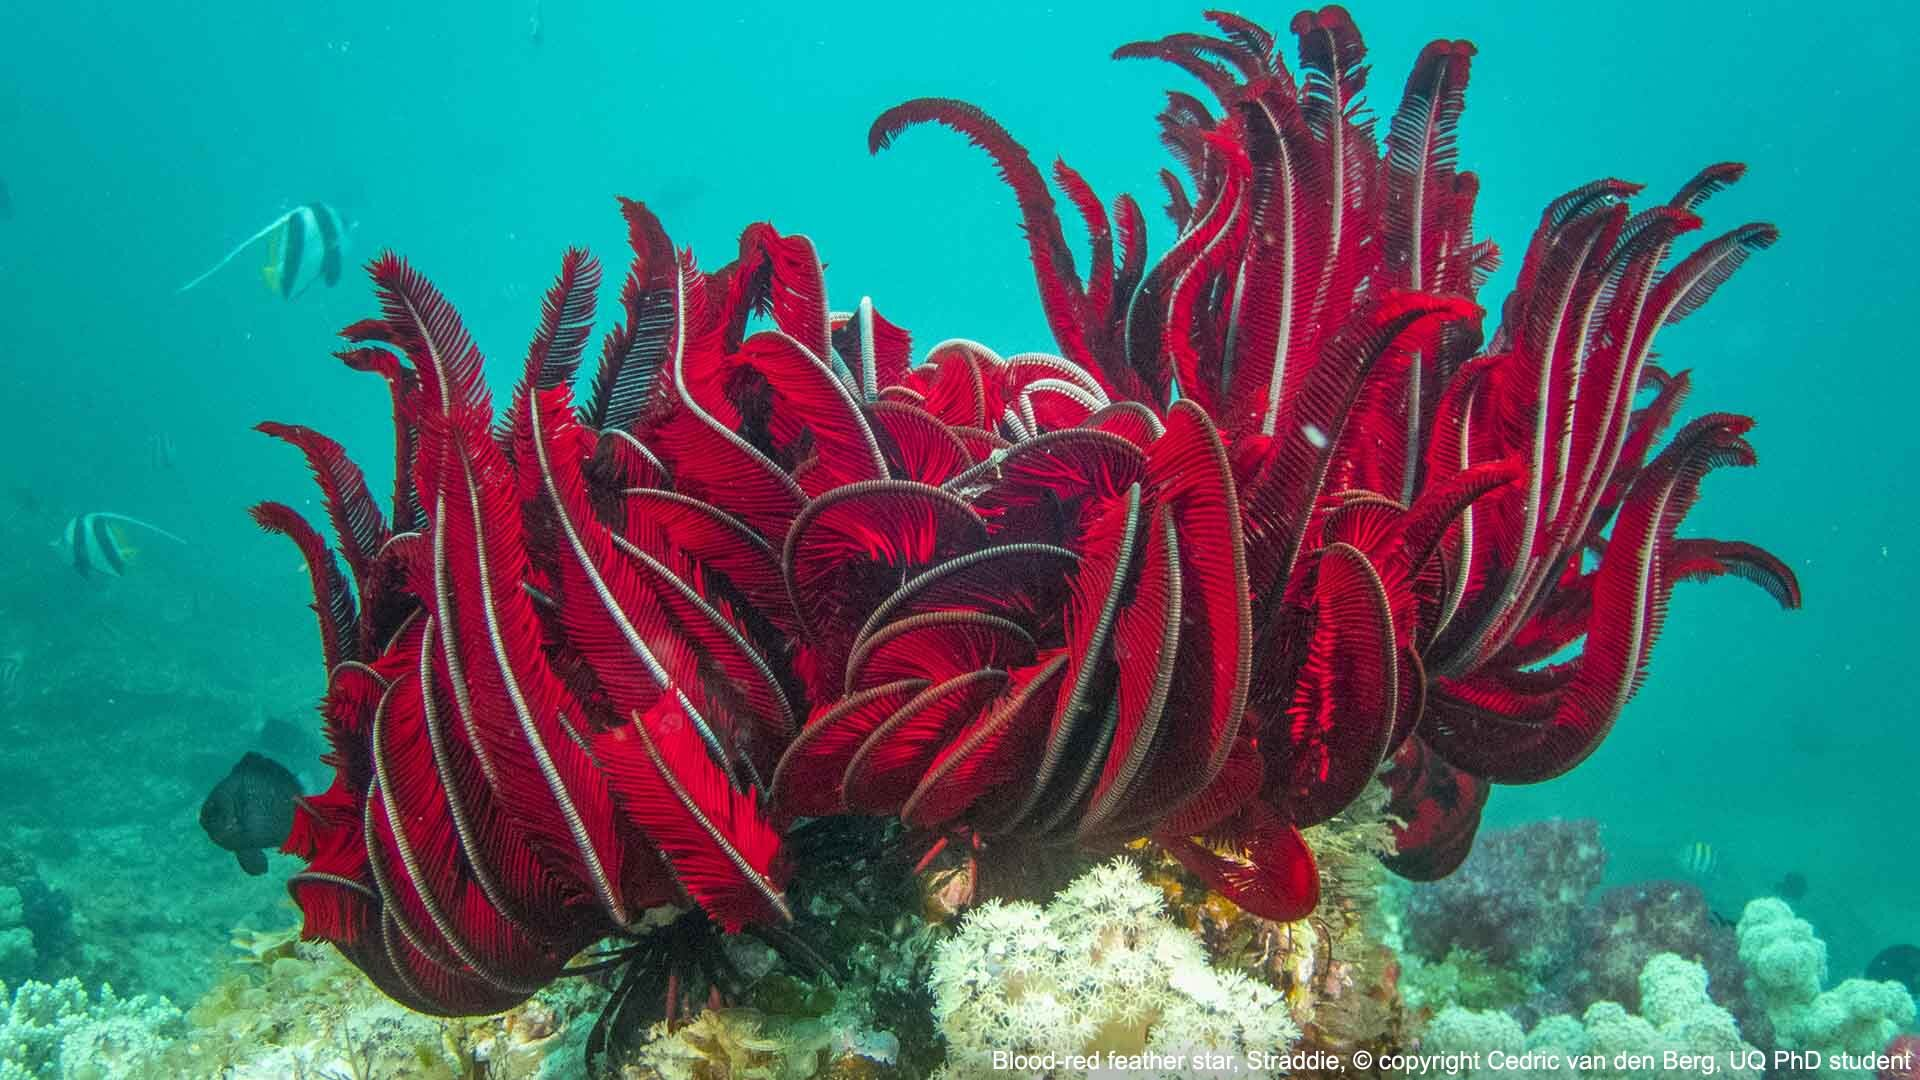 Blood-red feather star, Straddie, © 2017 copyright Cedric van den Berg, UQ PhD student